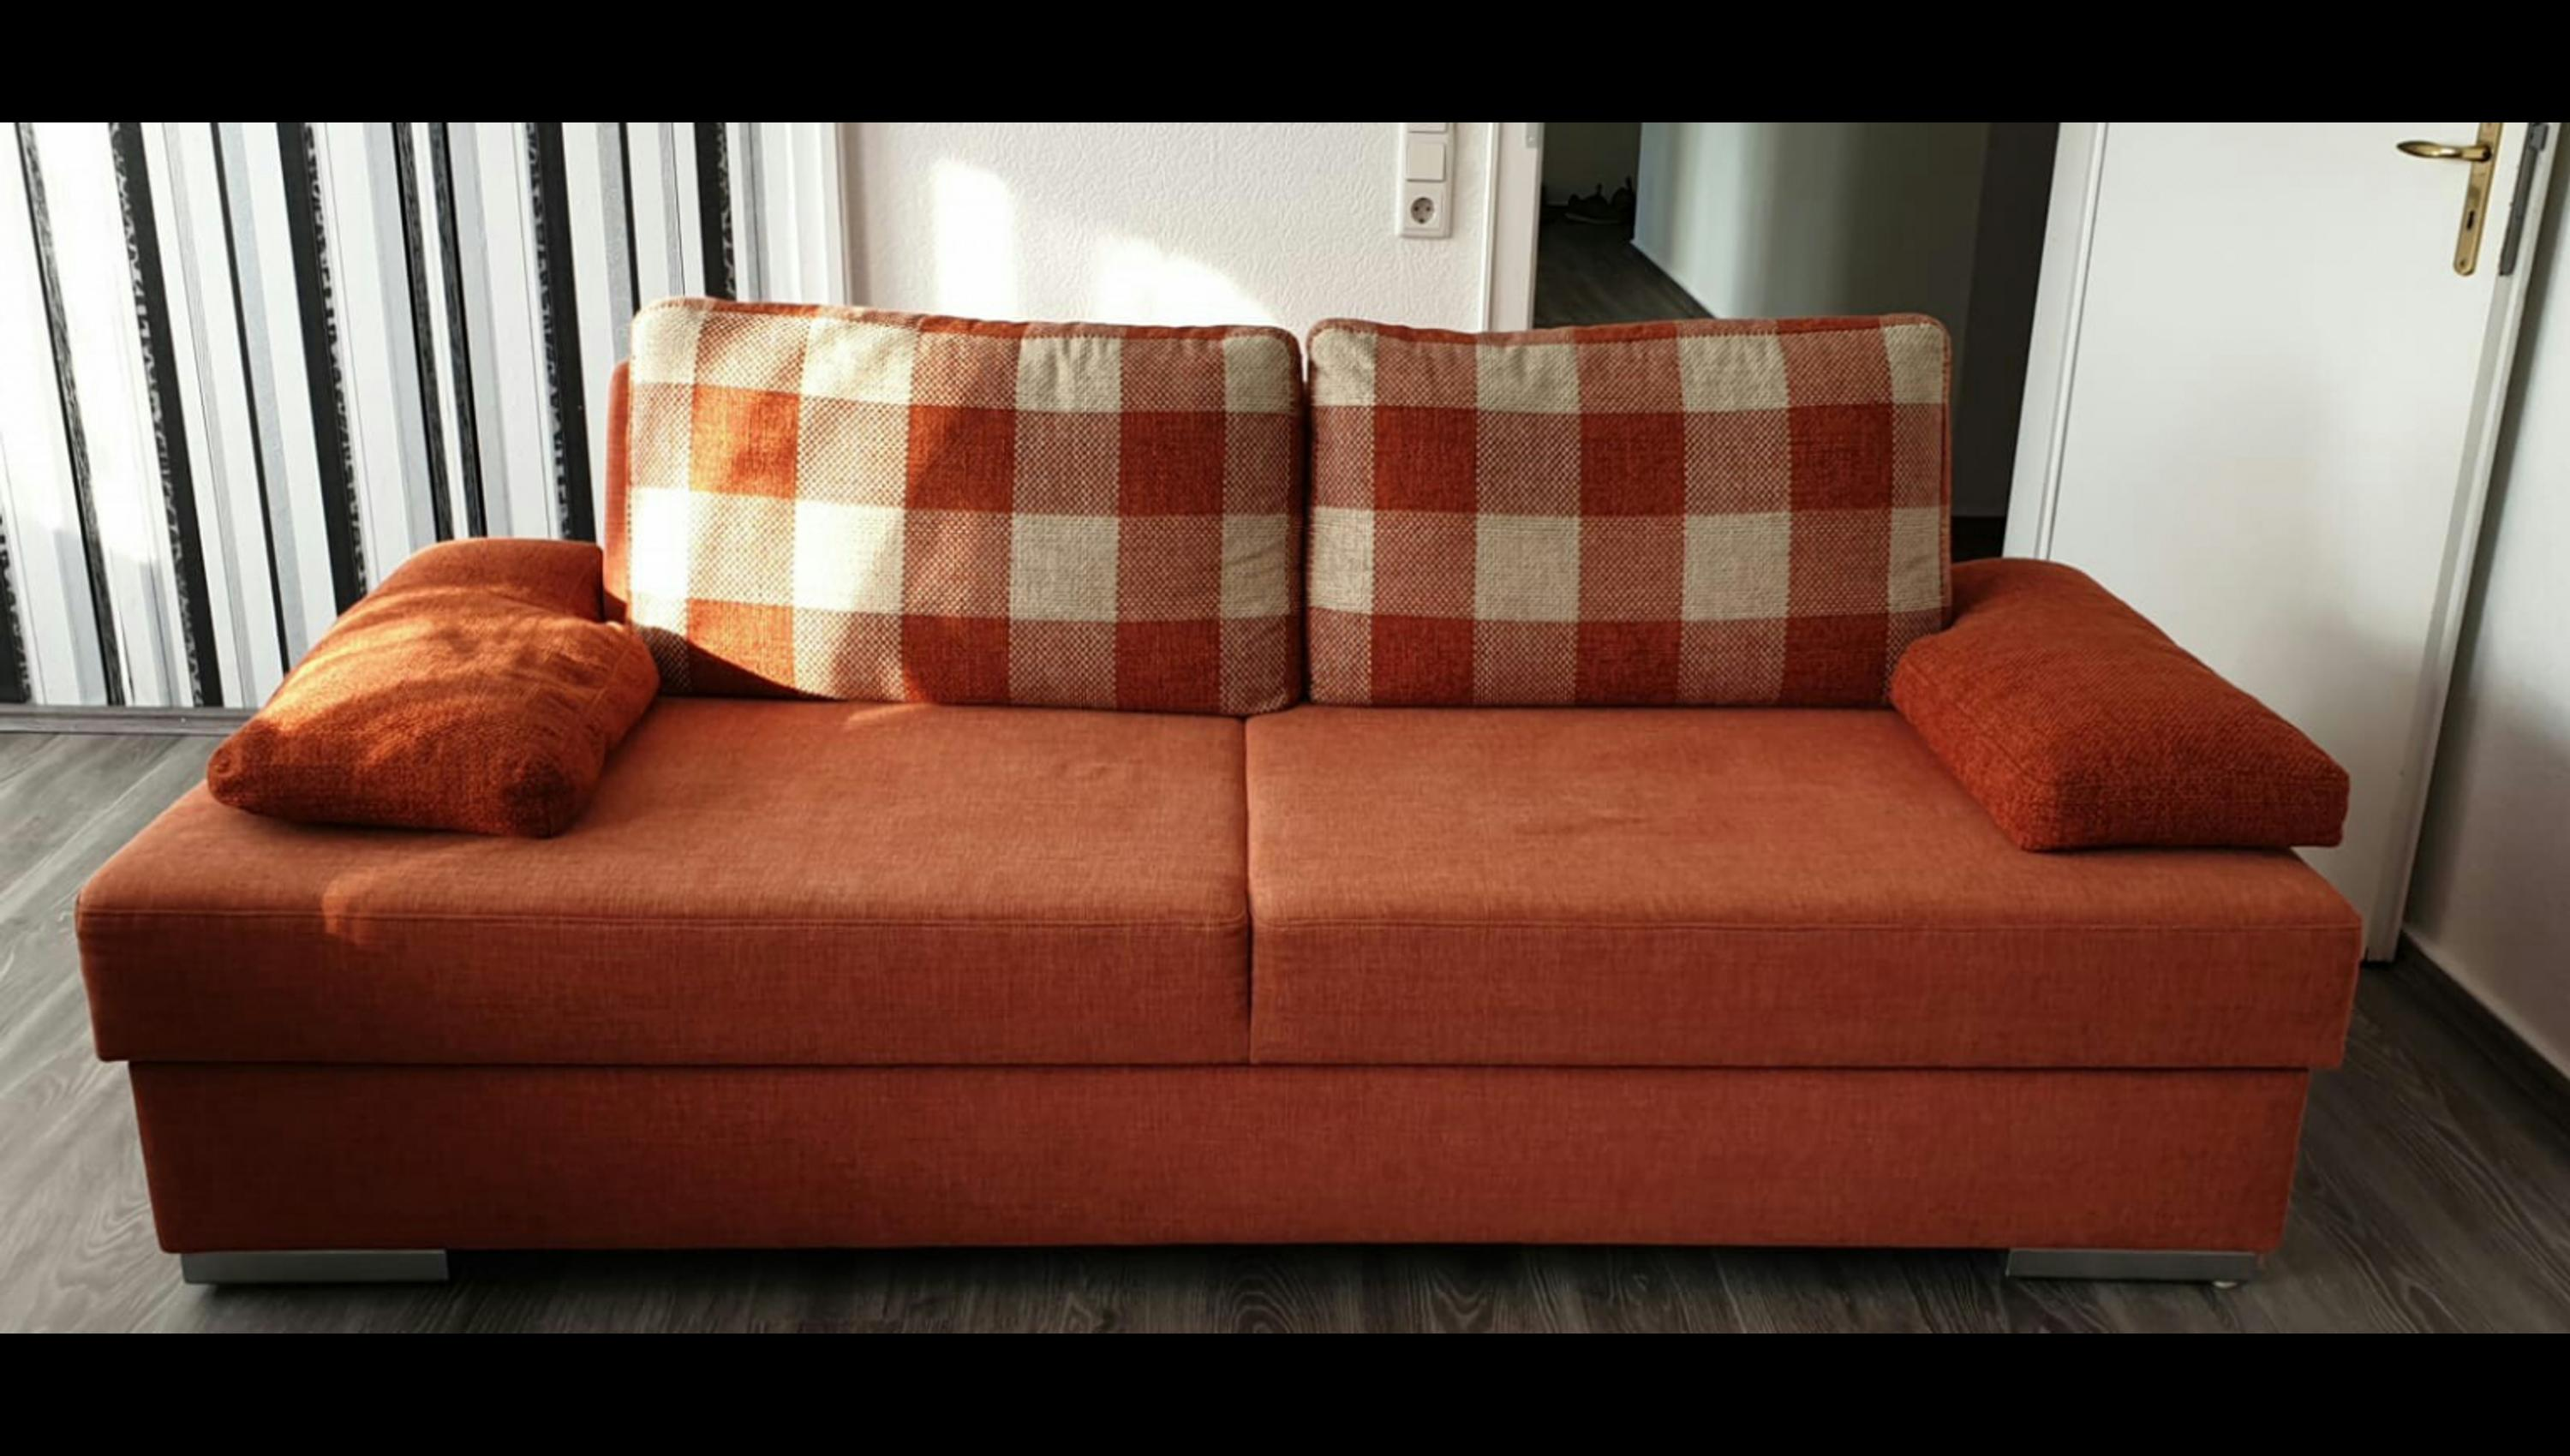 Ikea Bettsofa In 42275 Wuppertal For 250 00 For Sale Shpock